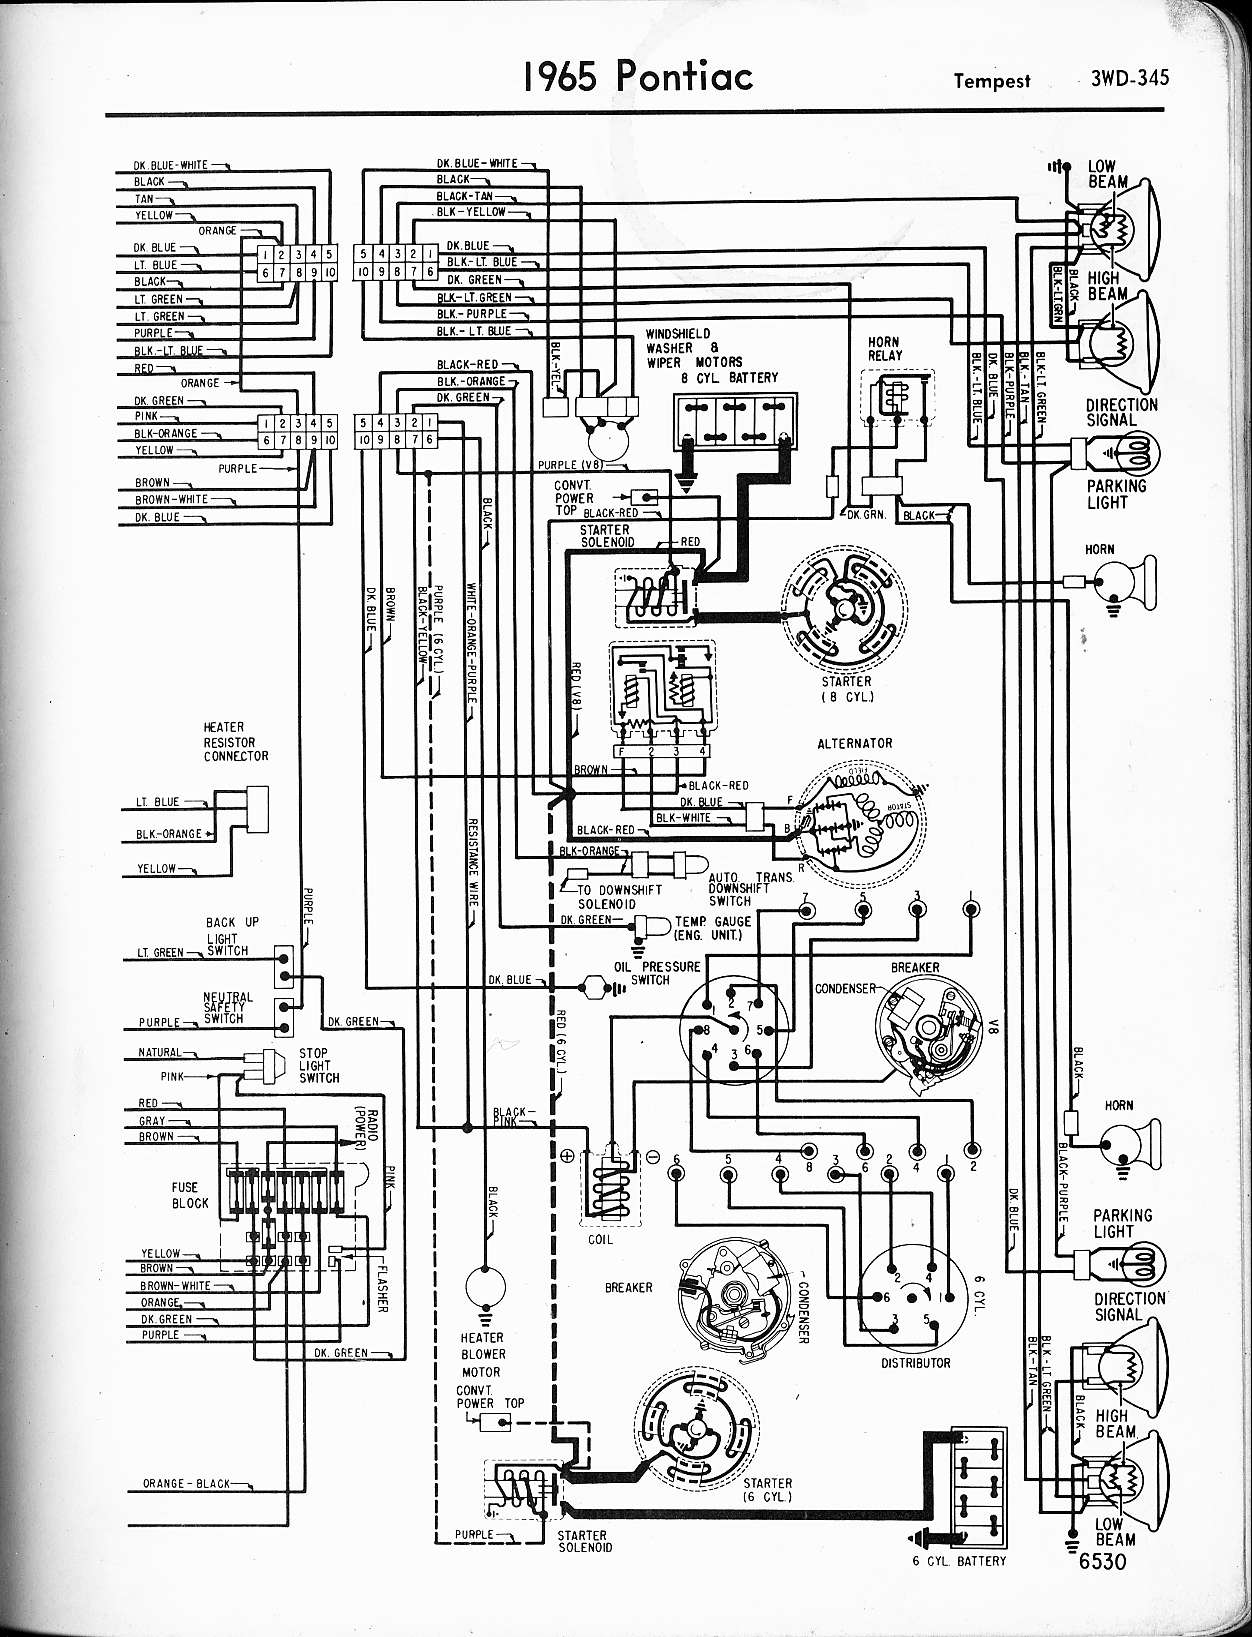 diagram] 67 pontiac coil wiring diagram full version hd quality wiring  diagram - diagramini26.hotelristoranteeuropa.it  diagramini26.hotelristoranteeuropa.it